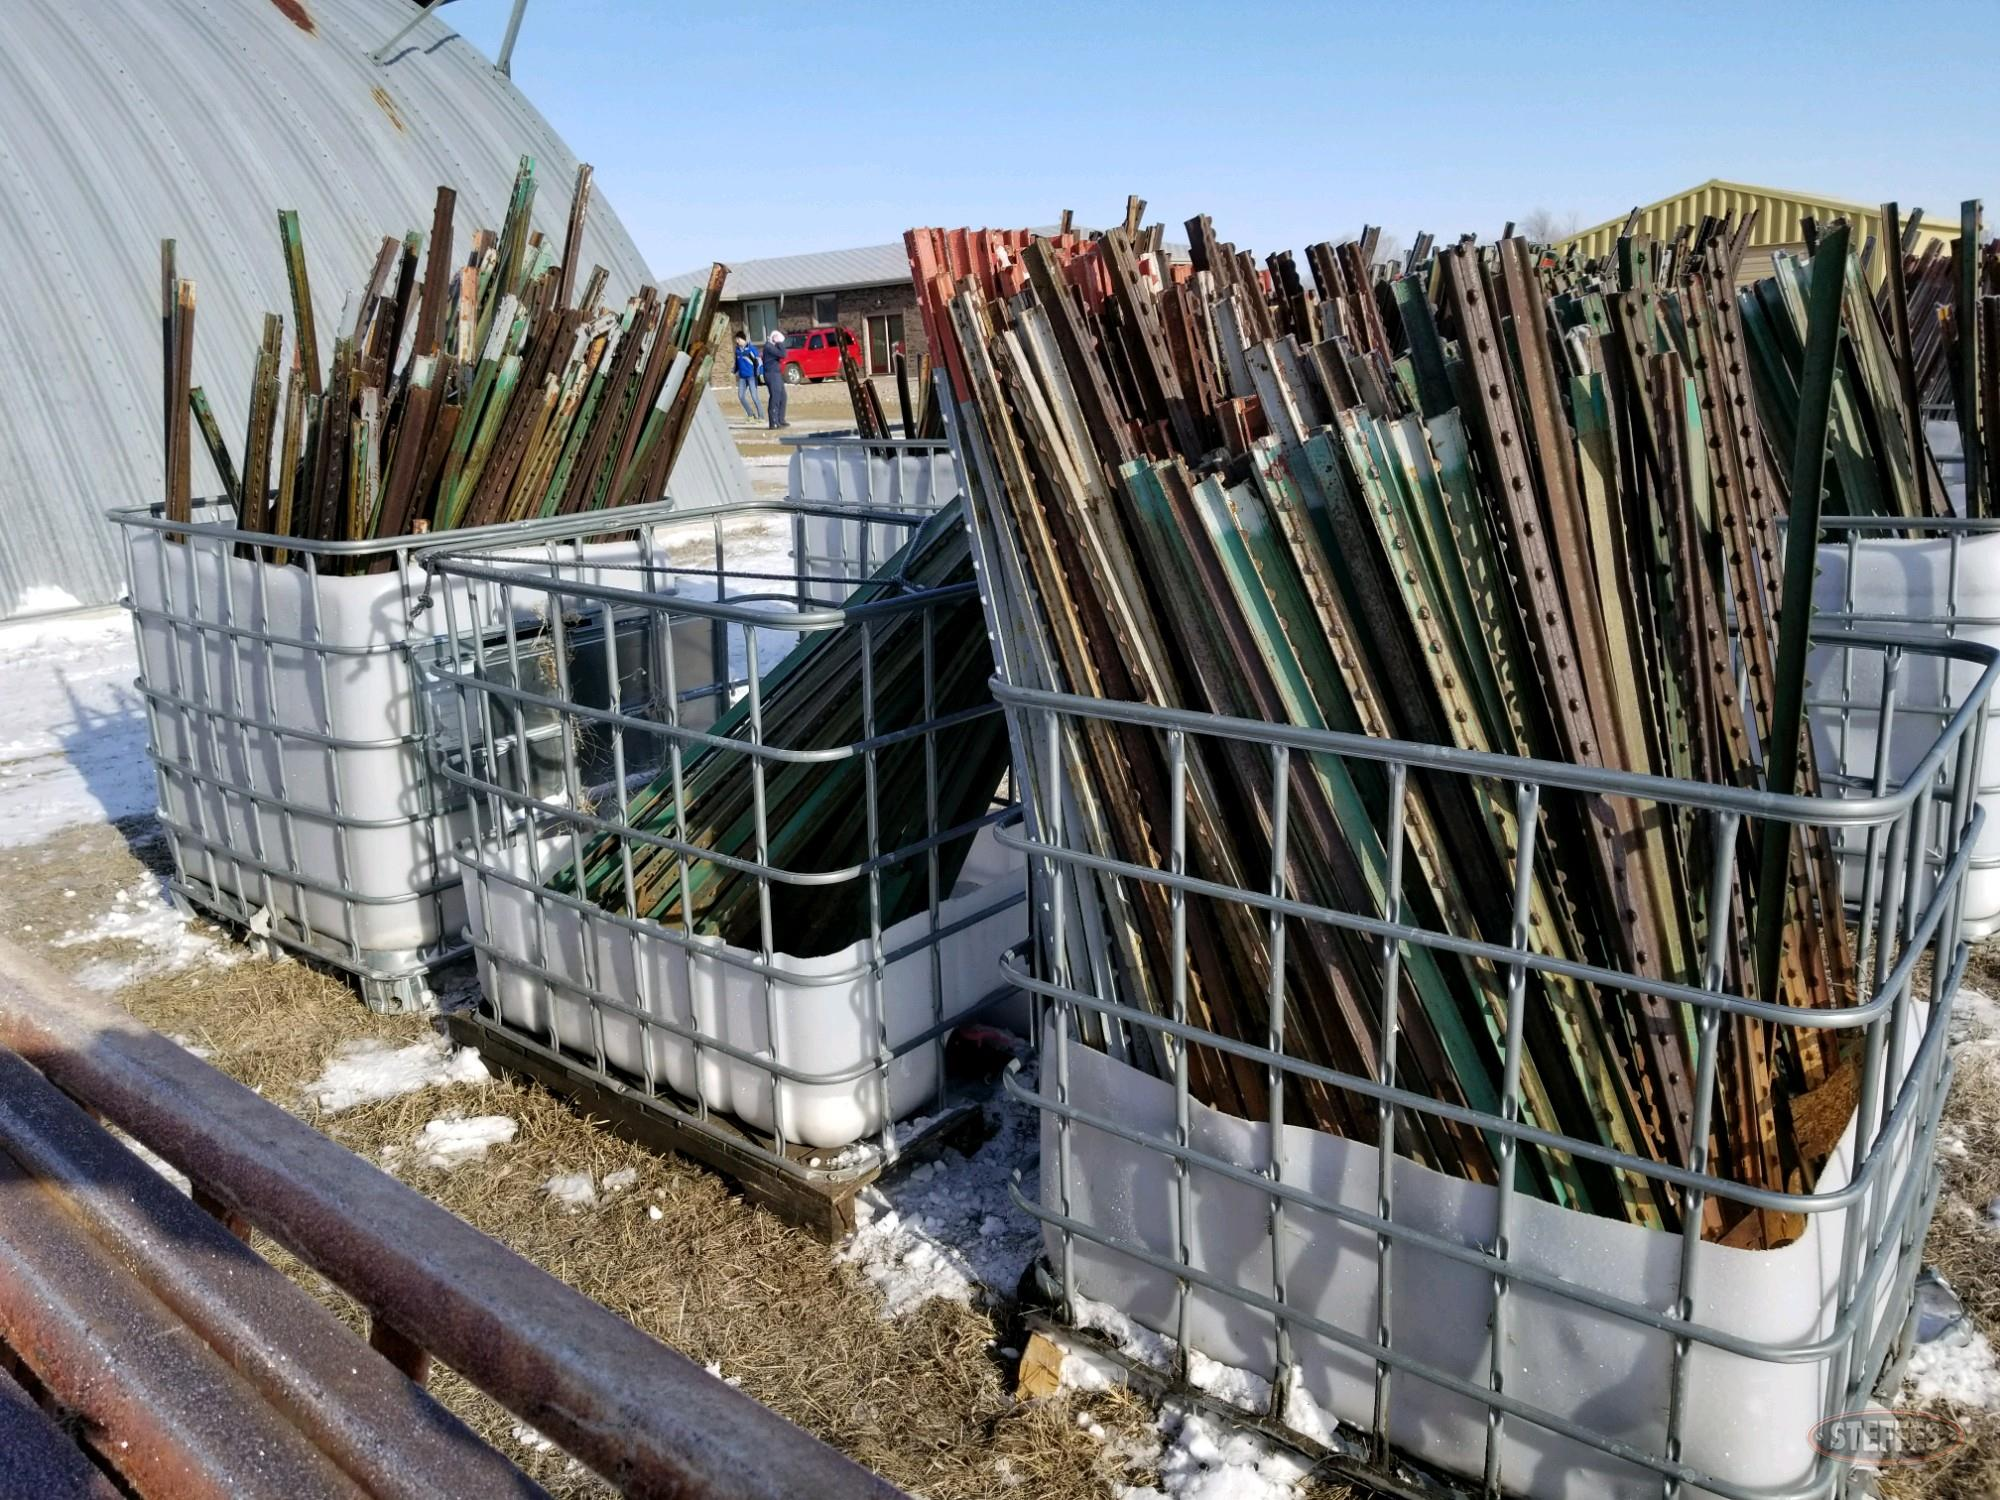 (3) Pallets of asst. steel fence posts